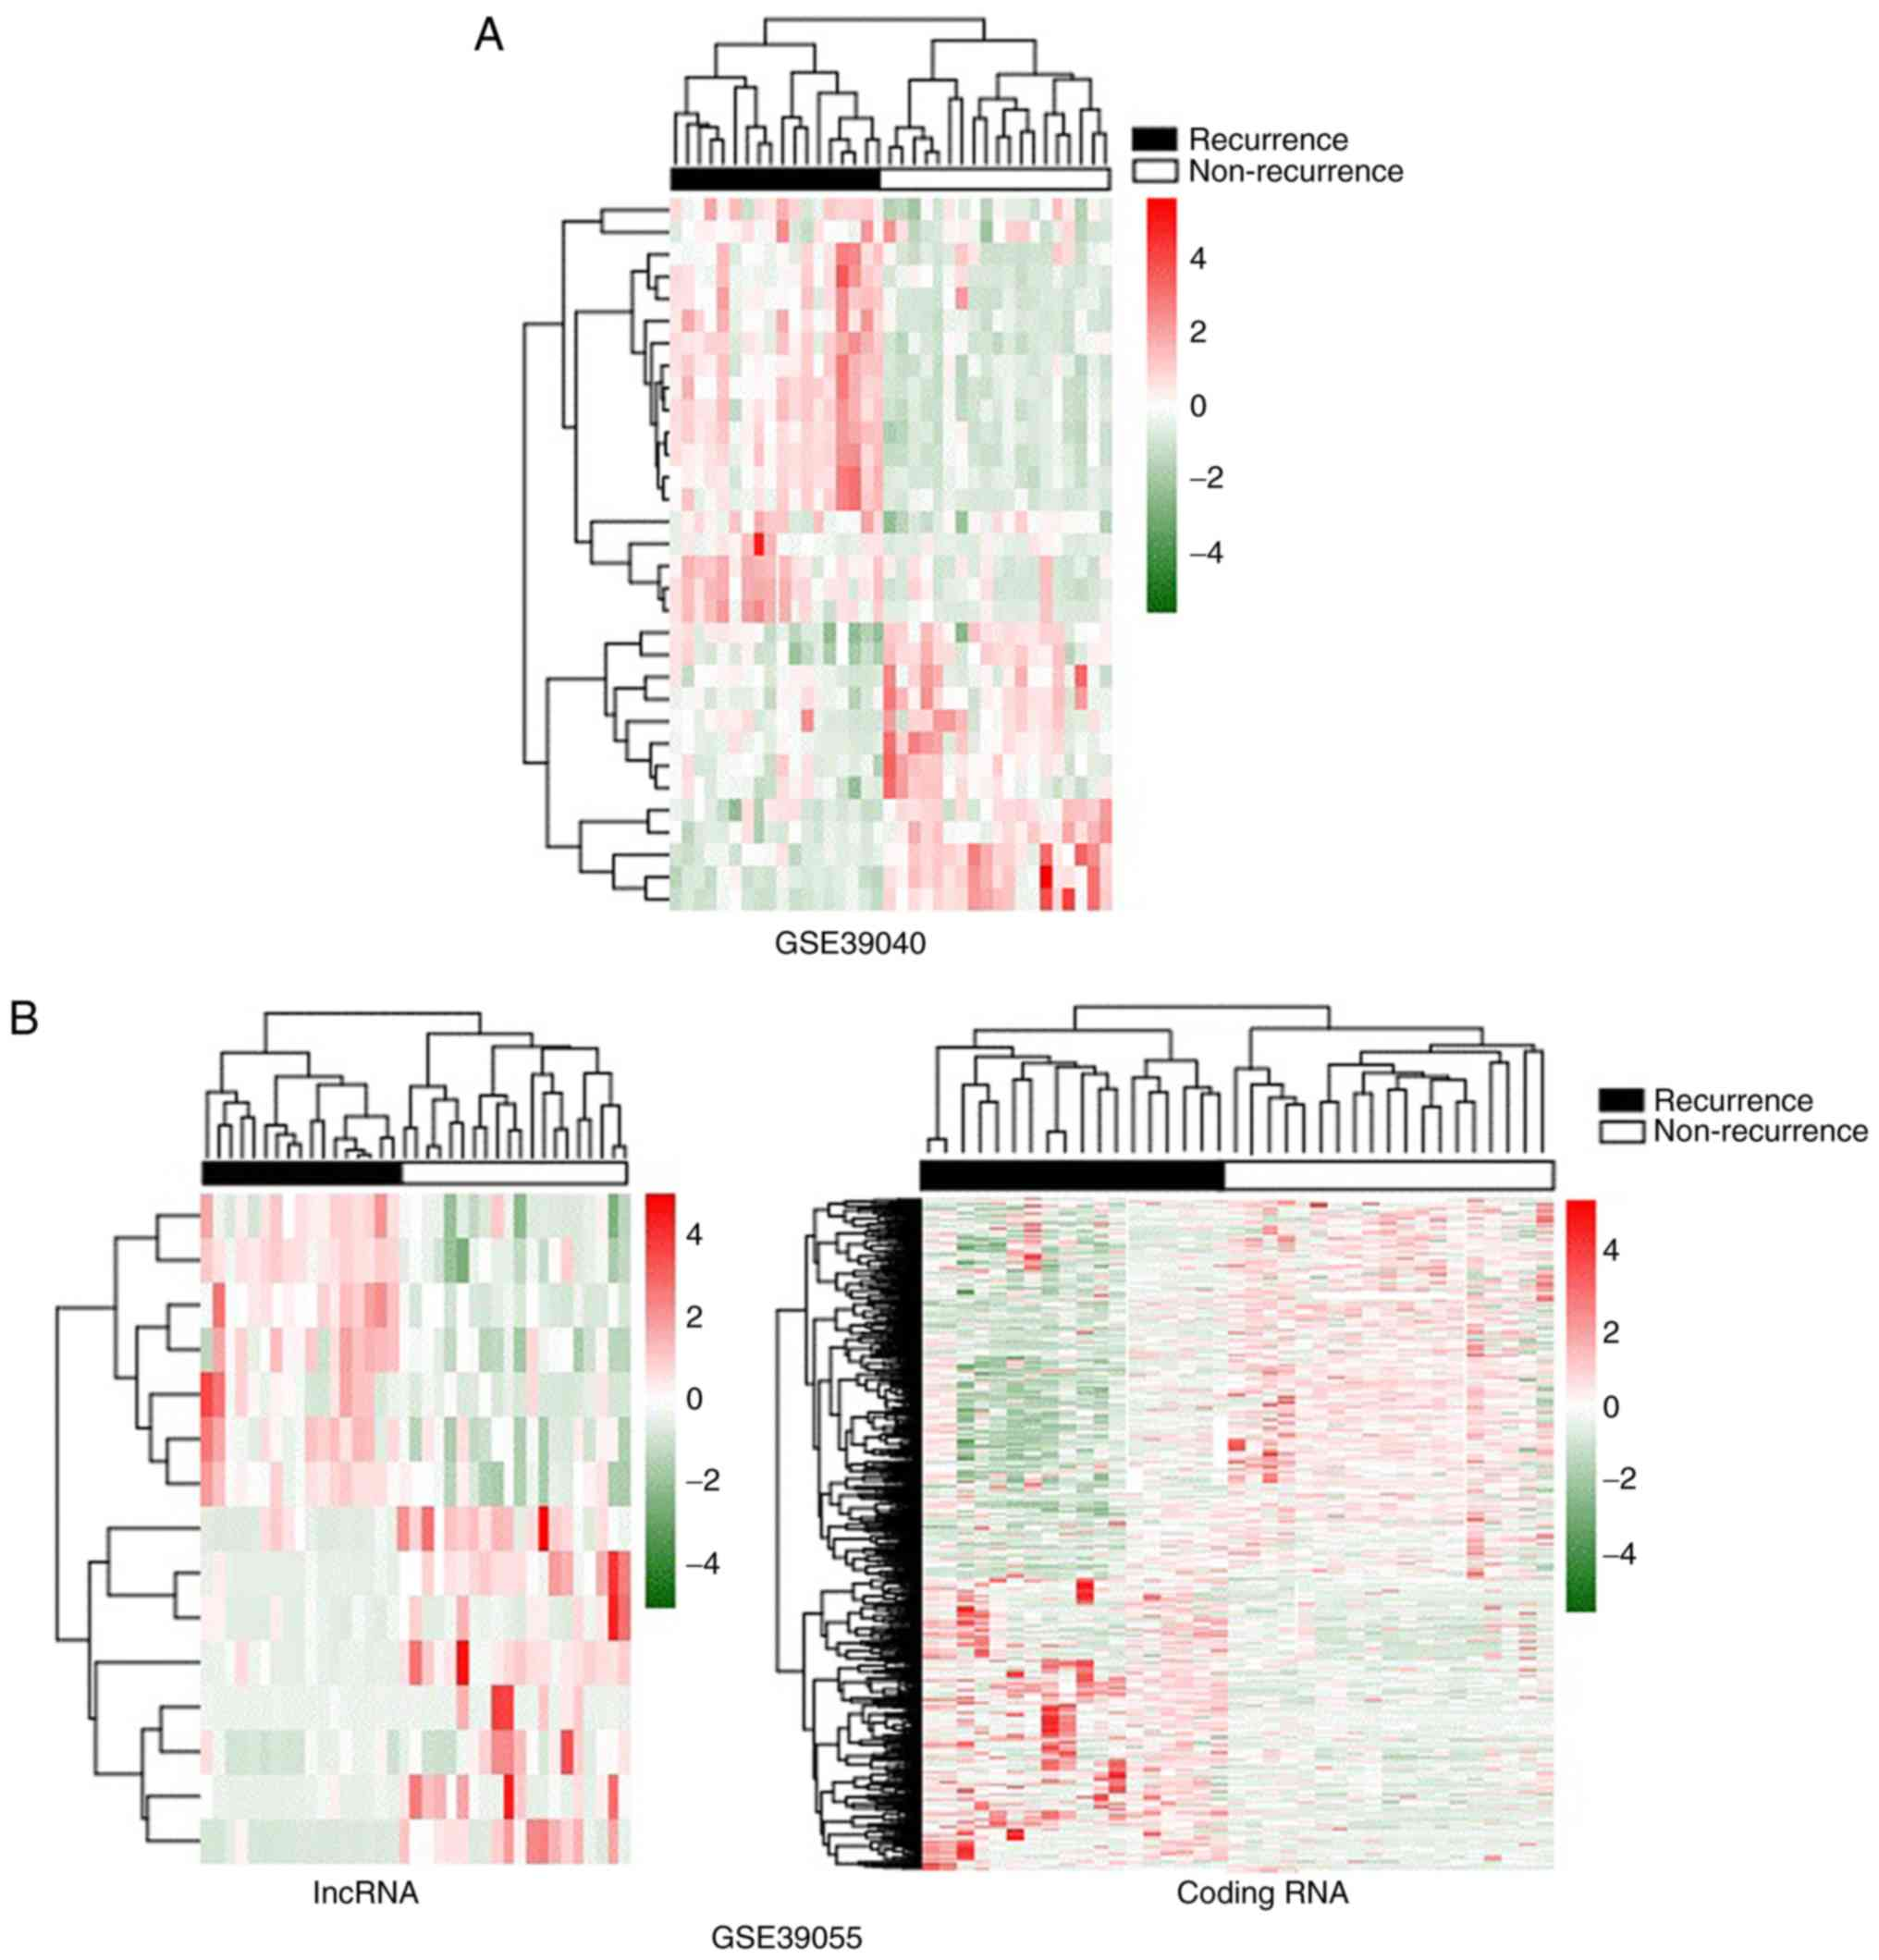 Identification of biomarkers associated with the recurrence of